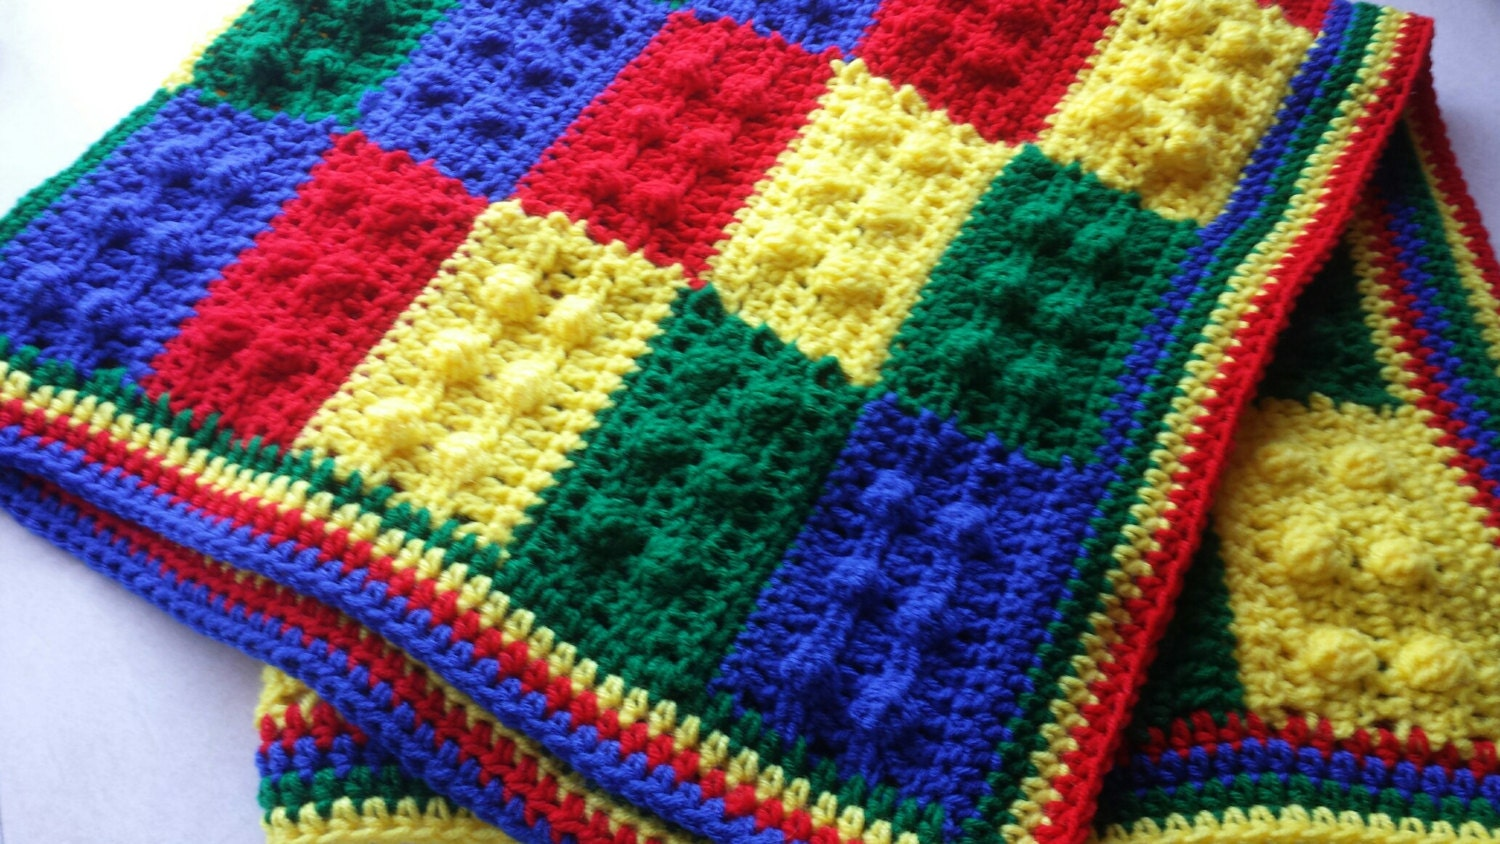 Lego Baby Blanket Crochet Lego Afghan Lego Throw Made to order